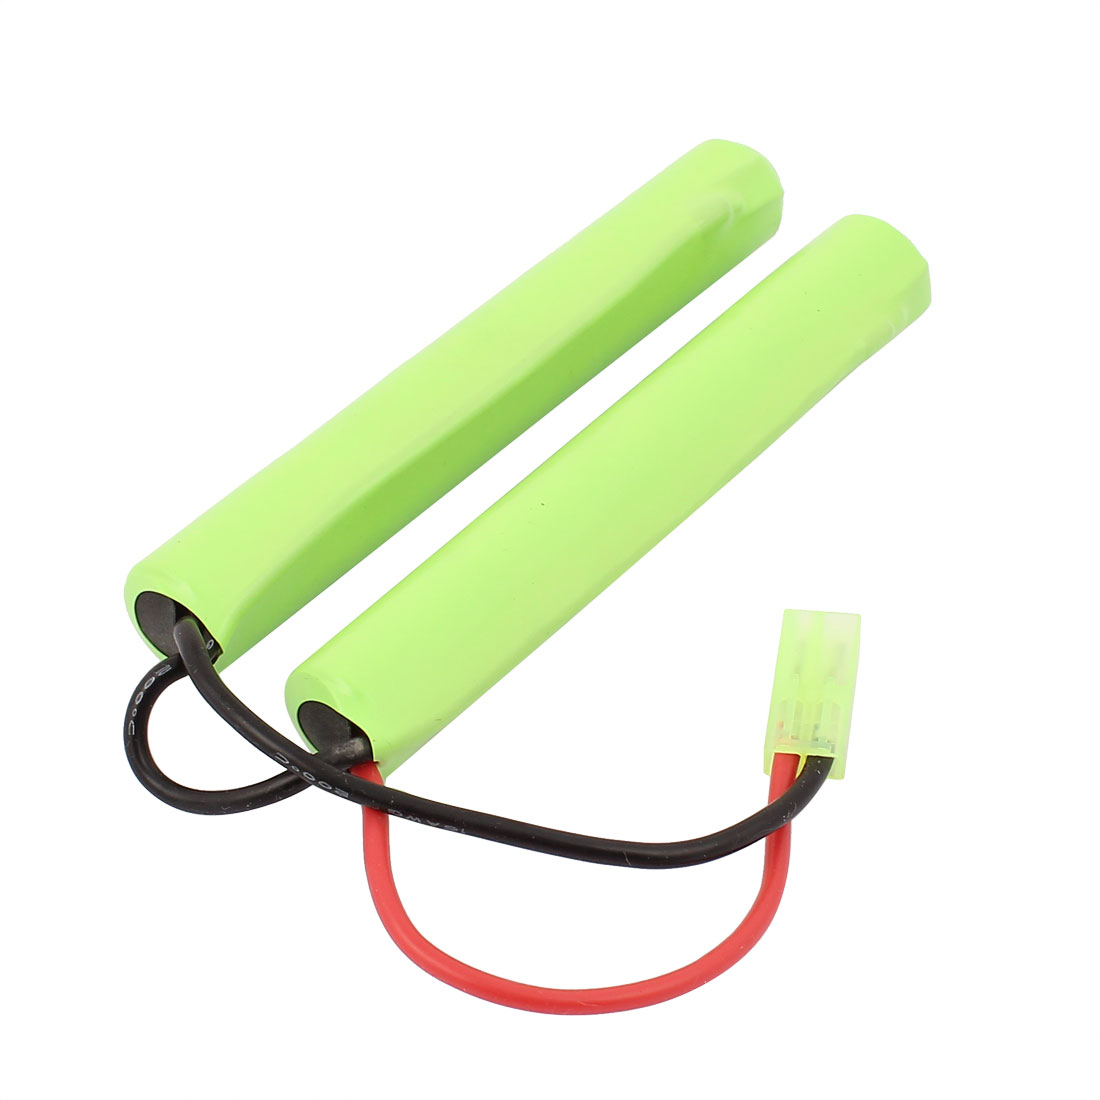 DC 9.6V 1200mAh Rechargable Lithium Polymer AAA Battery P...